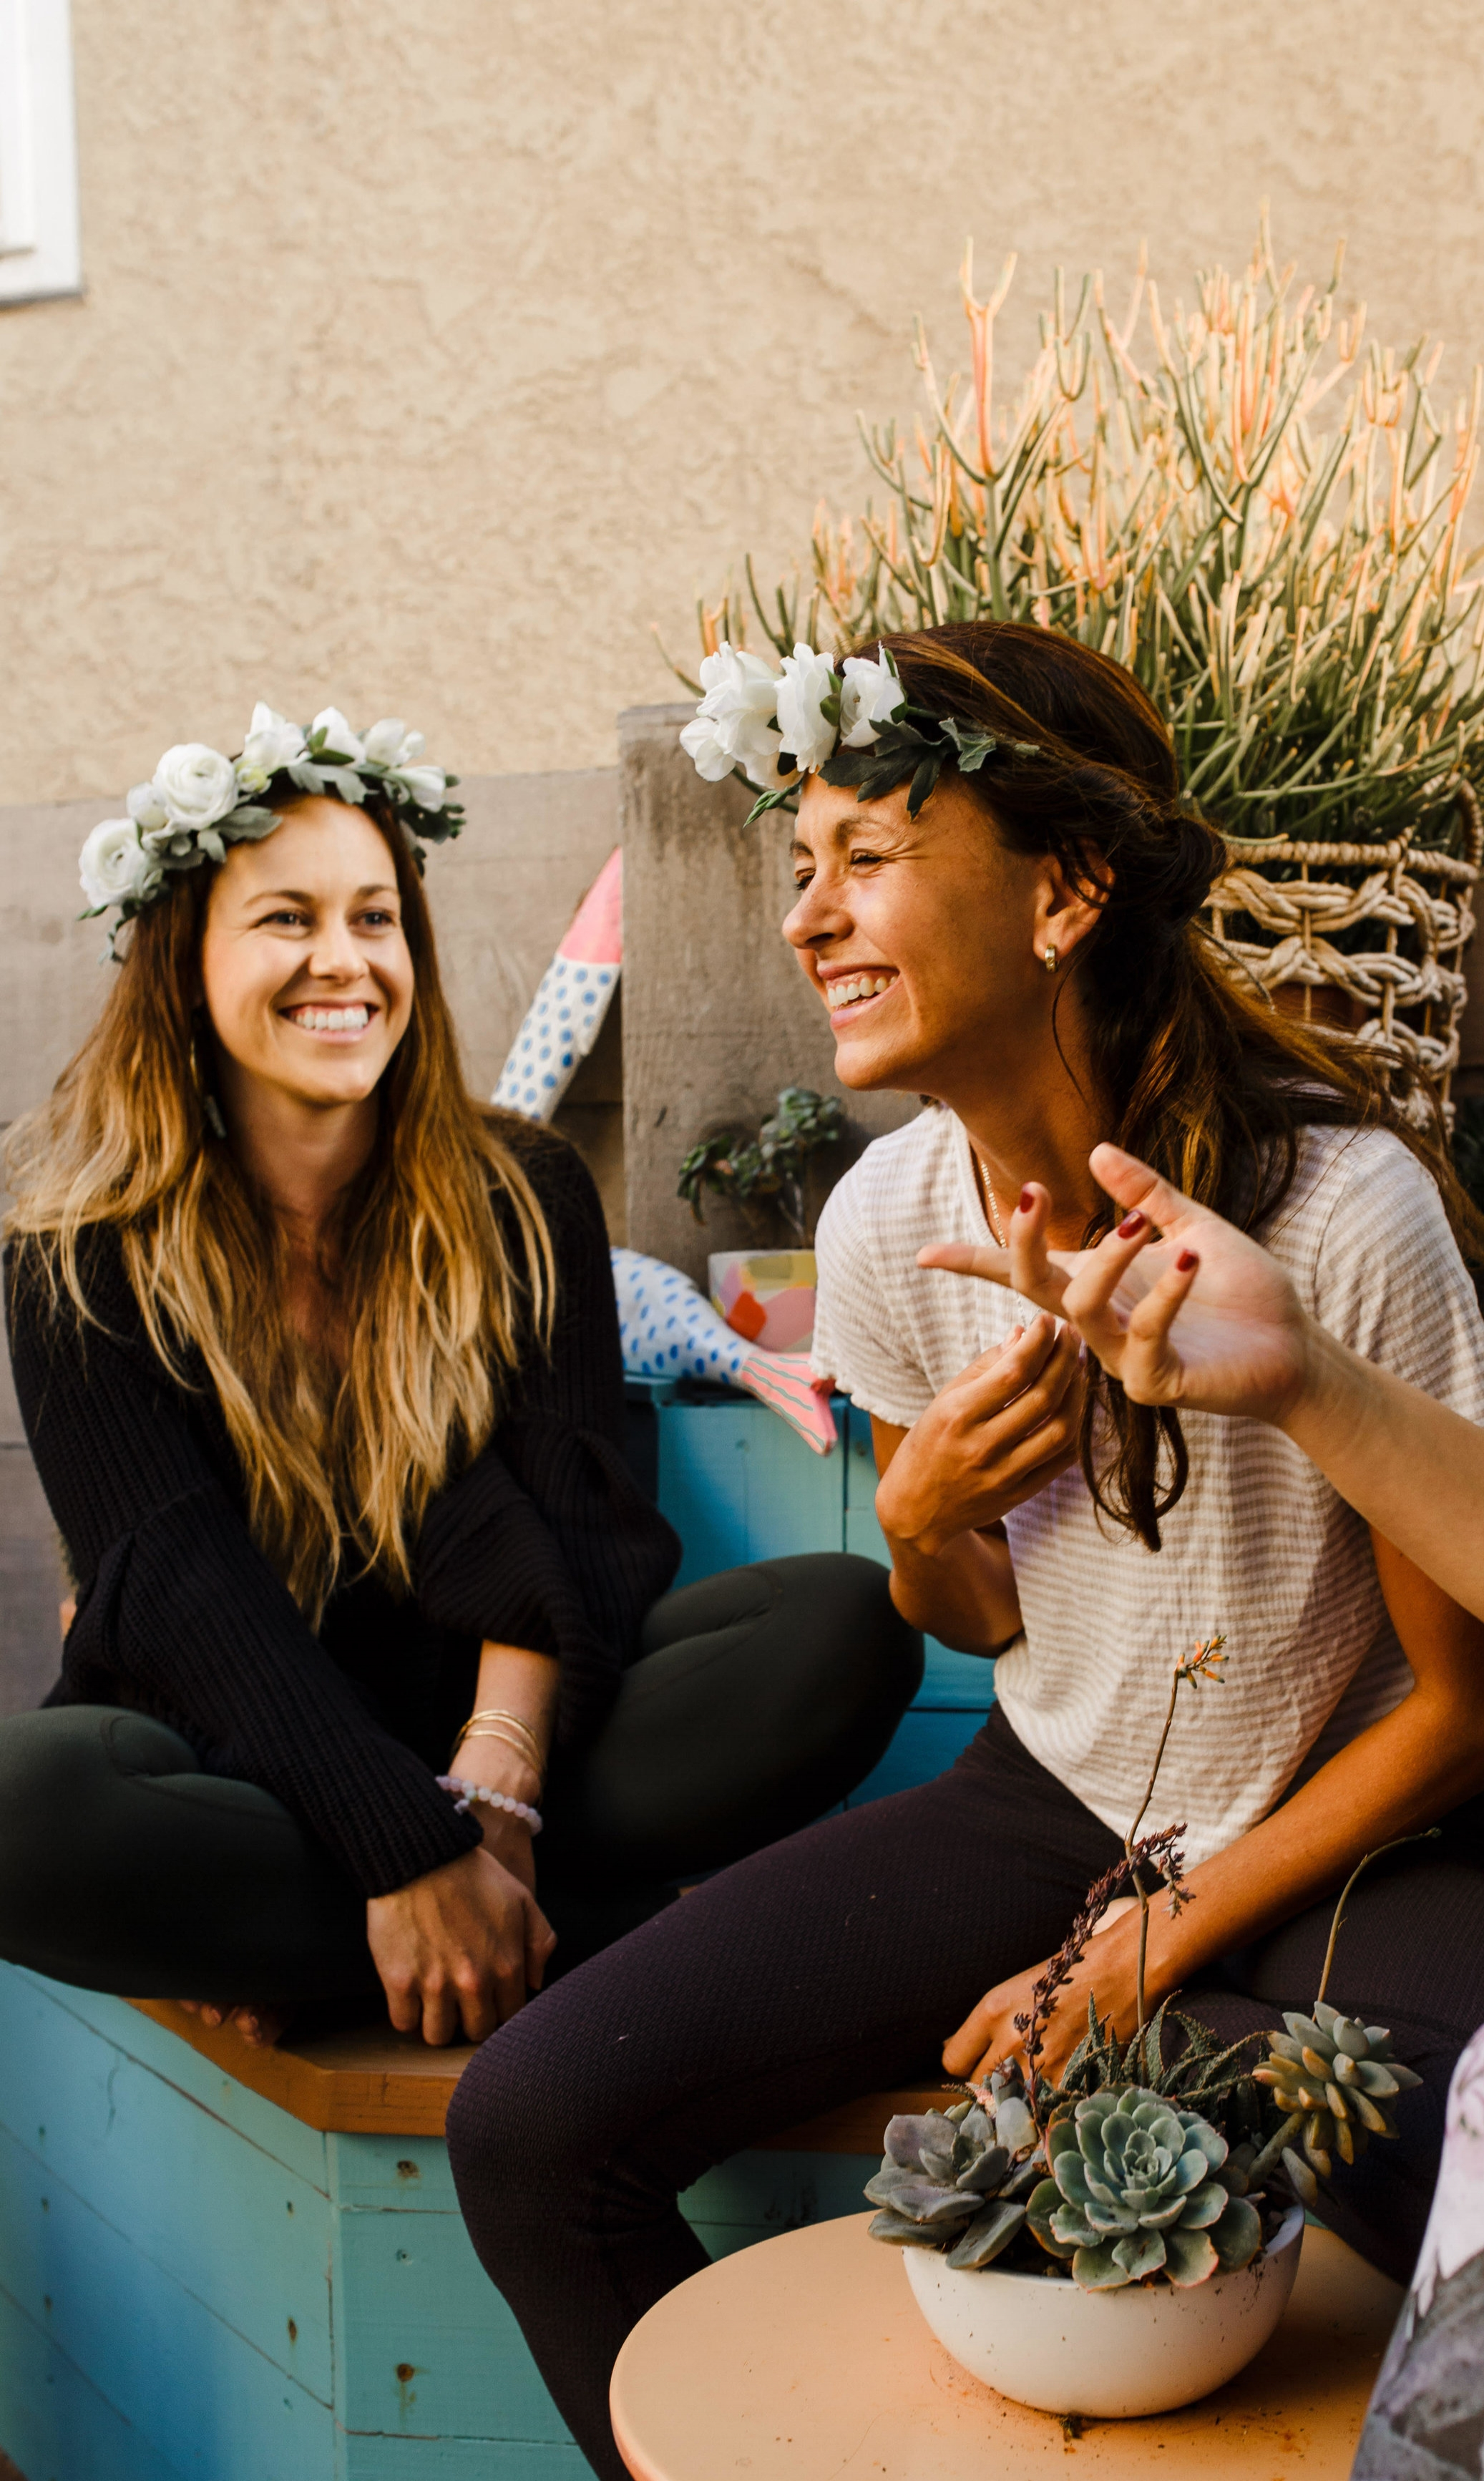 Jax + Olivia - >> Yoga Instructors <<Jax with her strengthening postures and Olivia with her elegant flows, these two soul sisters are a match made in Nirvana. Guiding you through 120 minutes of yoga during your workshop, propelling your practice Pa'lante.@oliviapenton86@palanteyoga